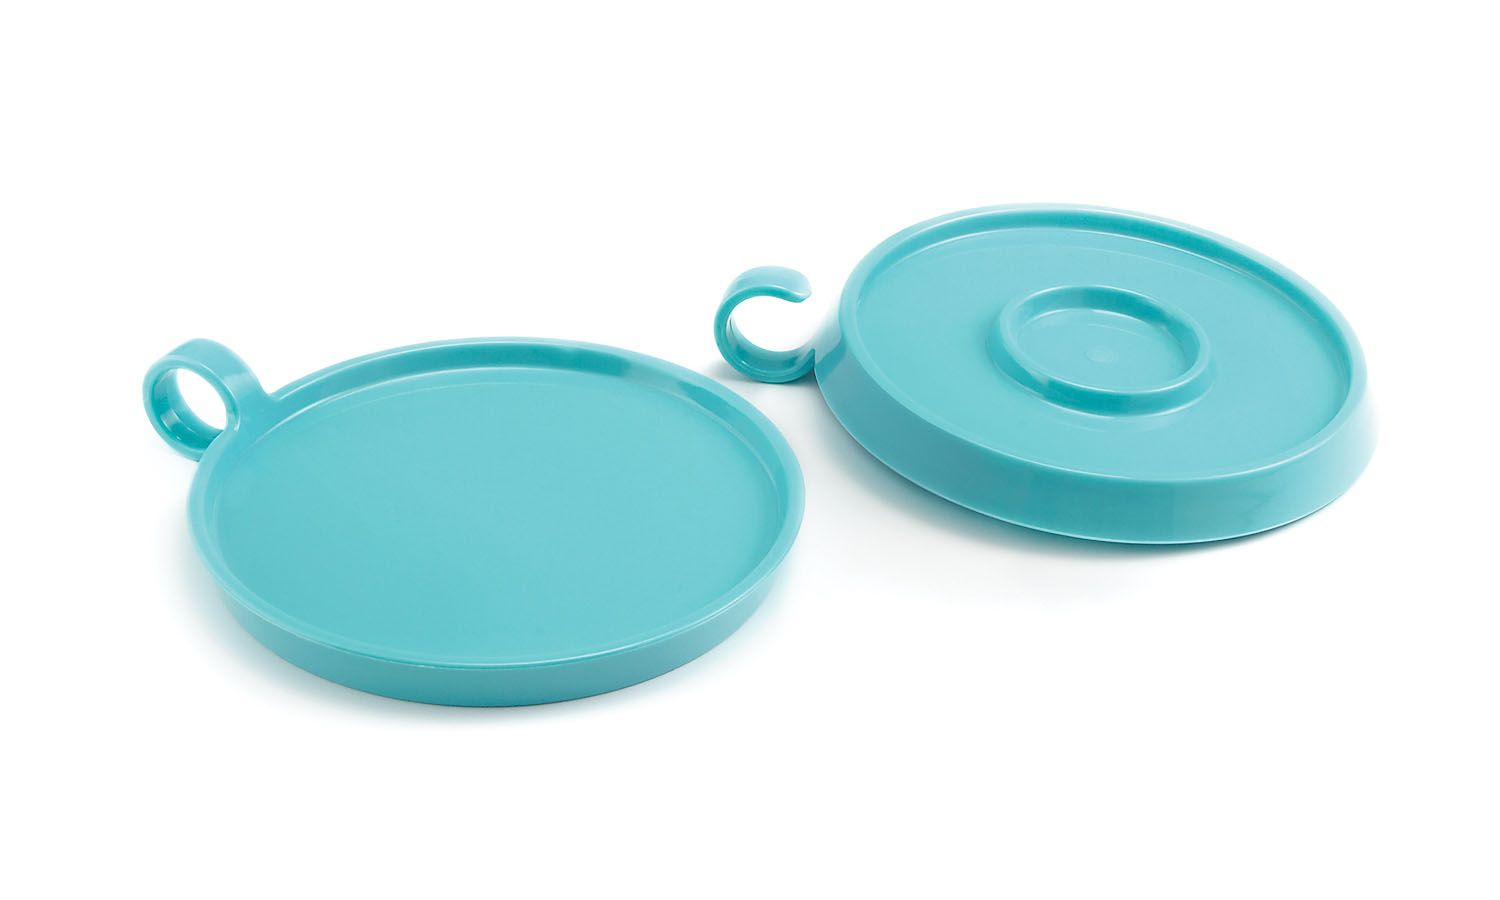 GoWARE - These little plates are as versatile as they are lightweight. On one side, a smooth plate; on the other, the center is a reservoir for dipping sauce or a condiment. The loop handle makes it hard for guests to drop. They're stackable for easy storage and made from durable, dishwasher-safe SAN plastic for easy cleaning. Available in Pacific Blue, Citrus Green, Tangerine, or Sapphire.